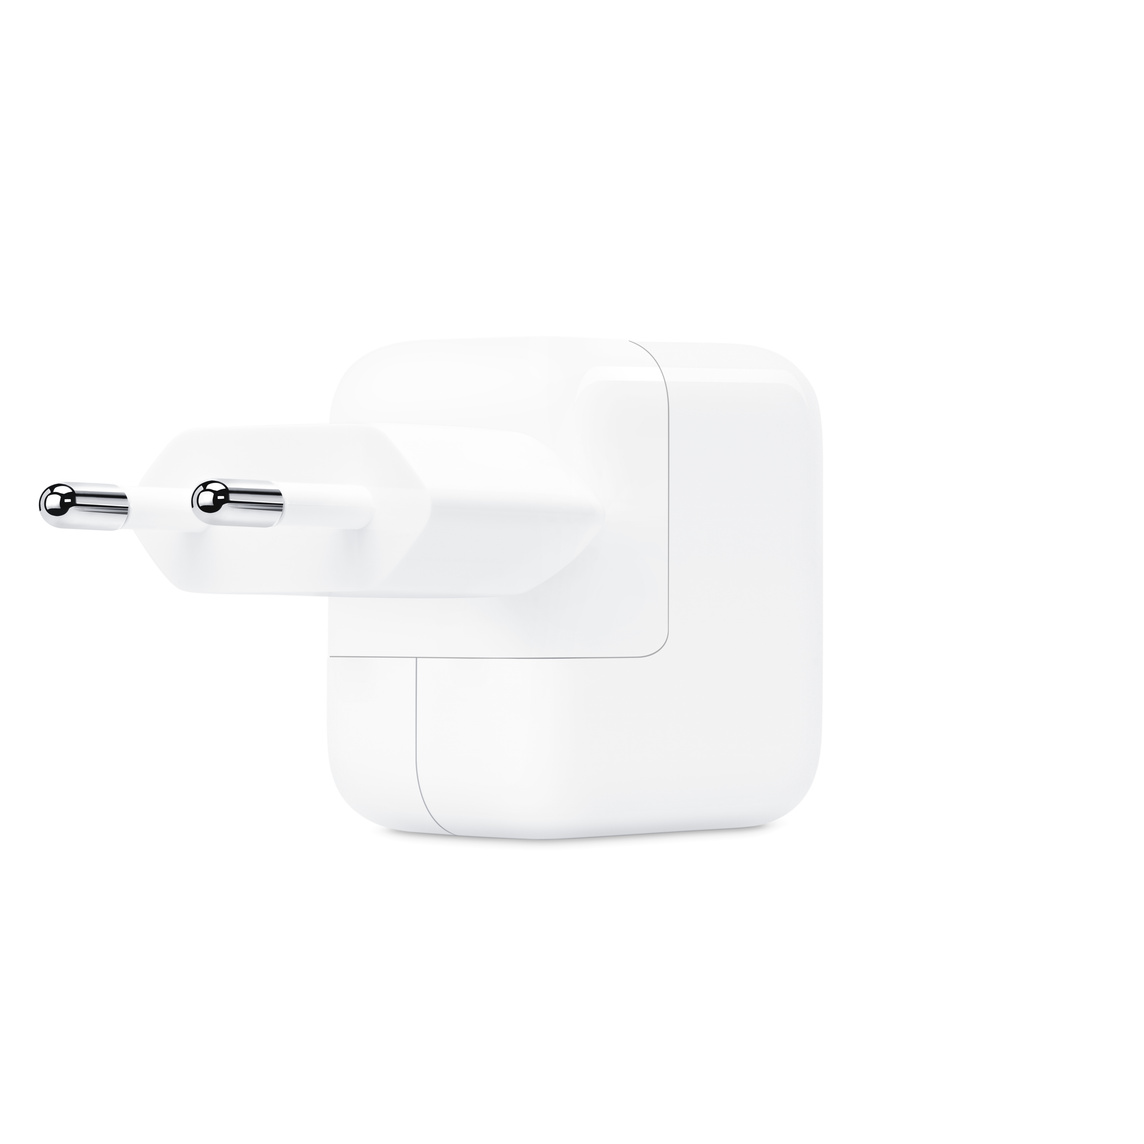 Apple USB lichtnetadapter van 12 W